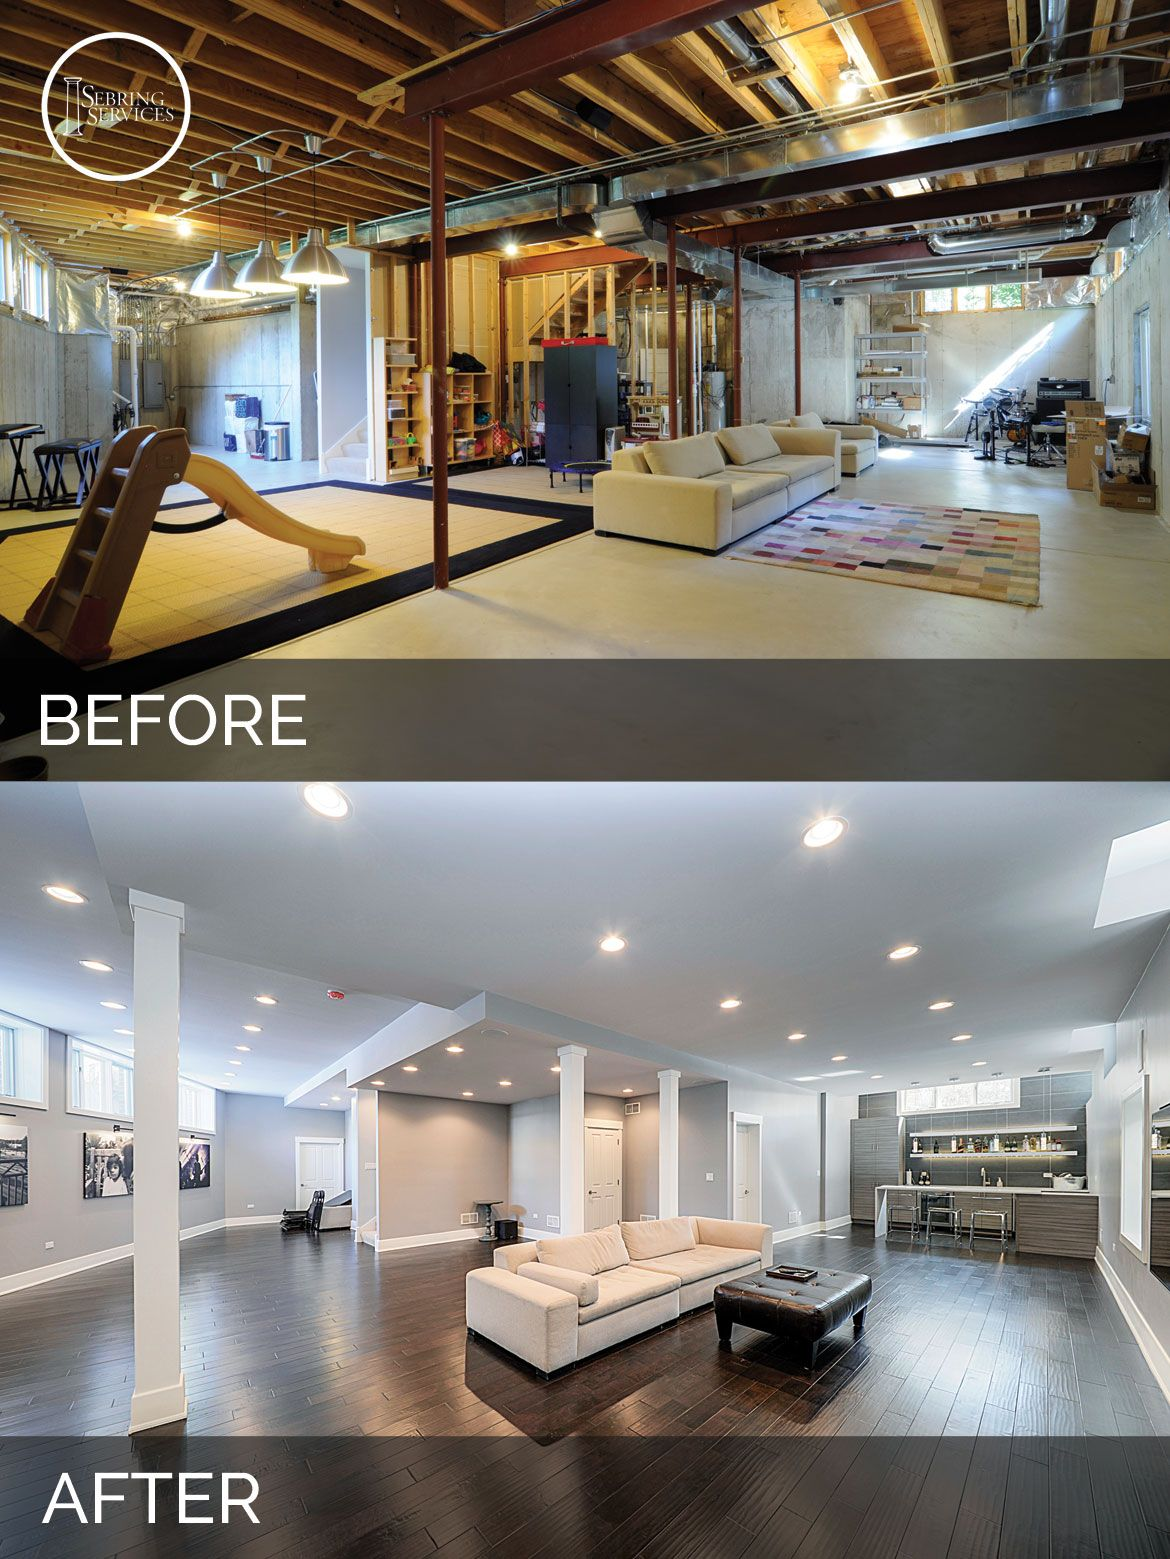 Before and After Basement Remodeling - Sebring Services : basement remodeling before and after  - Aeropaca.Org